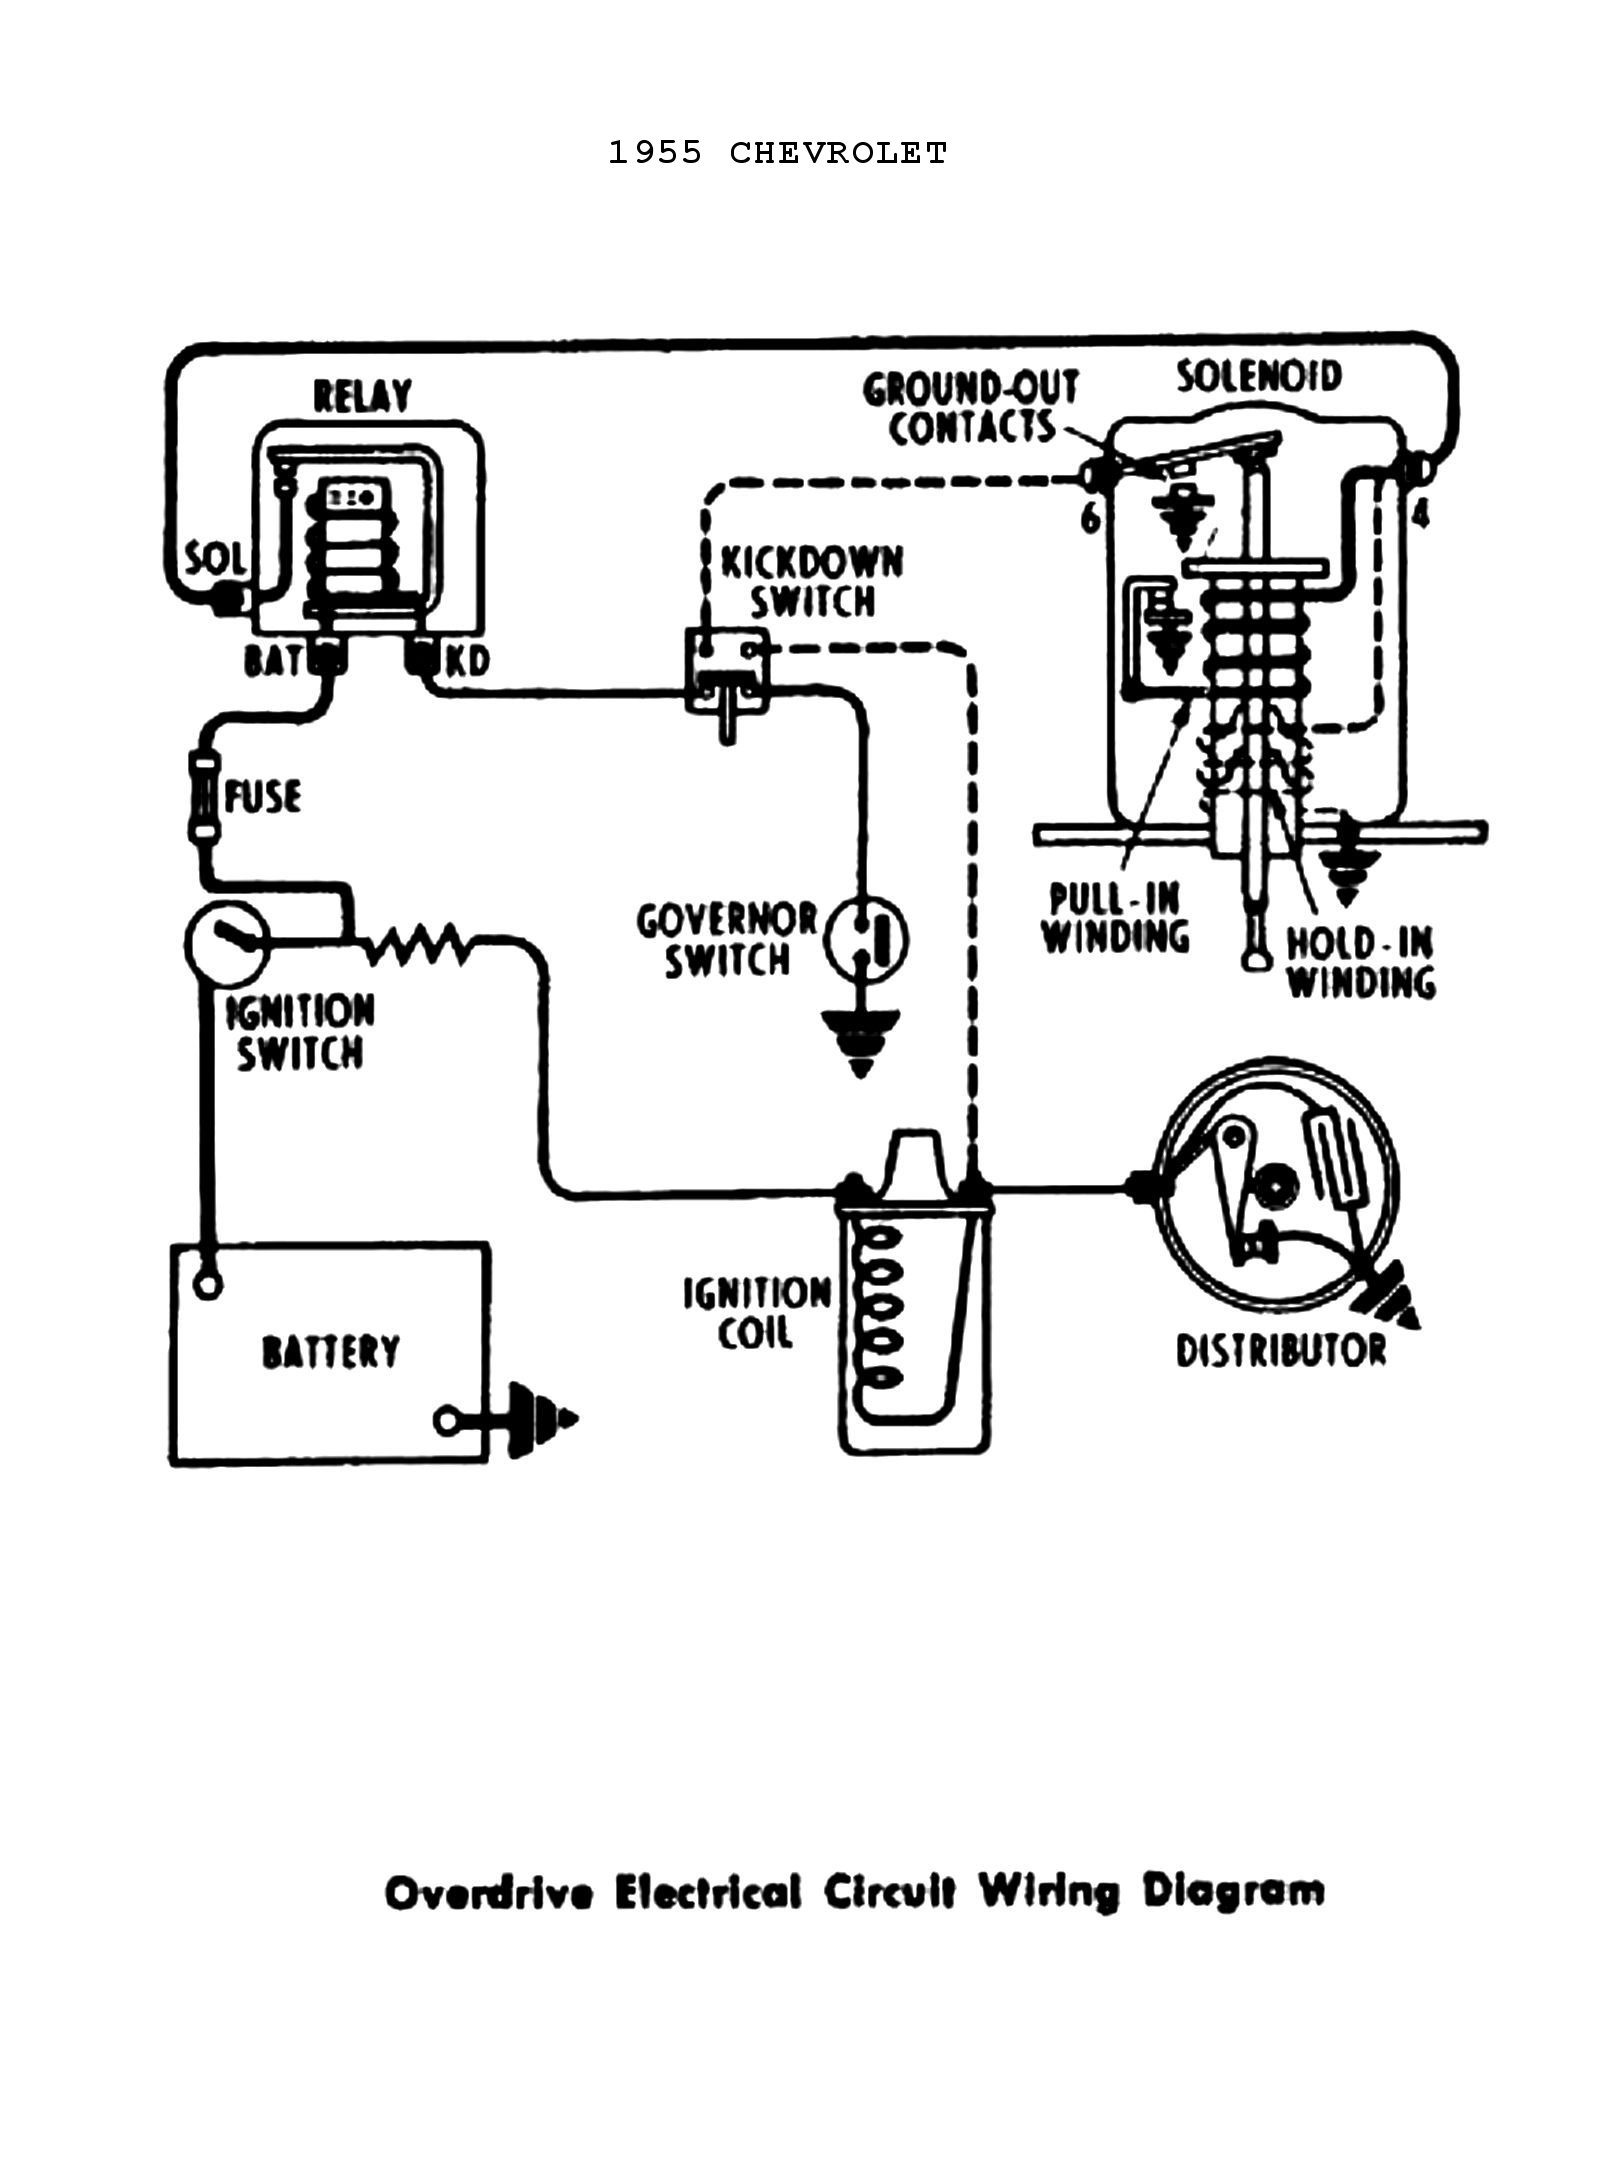 1956 Chevrolet Heater Wiring Diagrams furthermore 1957 Chevy Horn Wiring Diagram moreover Showthread in addition RepairGuideContent also 1957 Chevy Truck Ignition Switch Wiring Diagram. on 1957 chevy truck heater wiring diagram